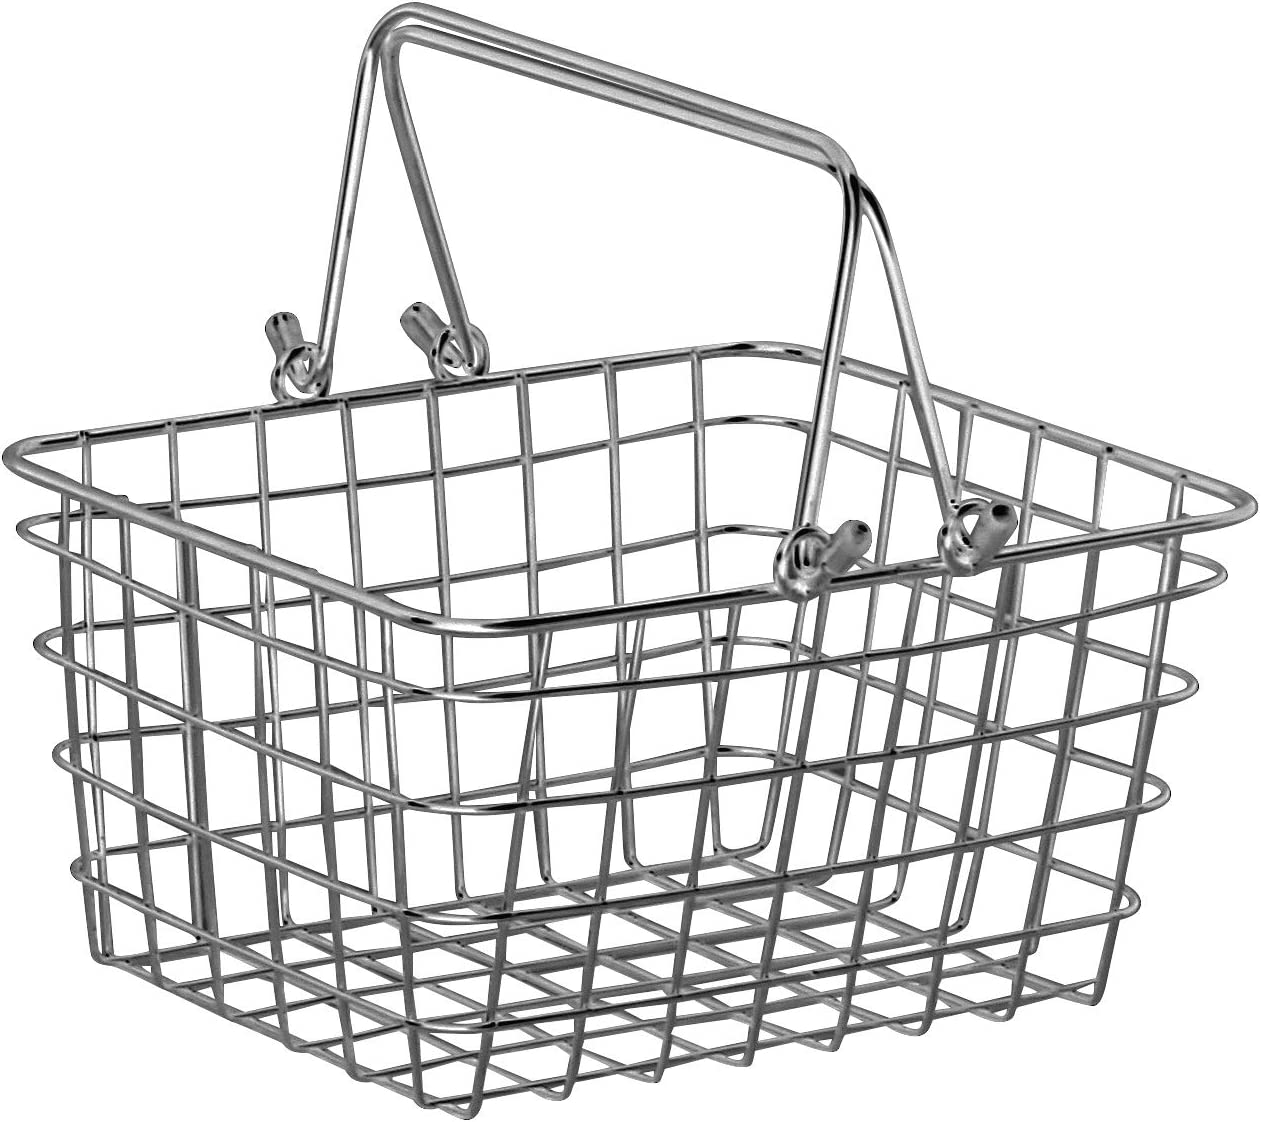 Spectrum Diversified Small Wire Storage Basket With Handles, Rustic Farmhouse Basket With Handles, Rust-Resistant Finish, Rustic-Style Tote Basket for Home Décor